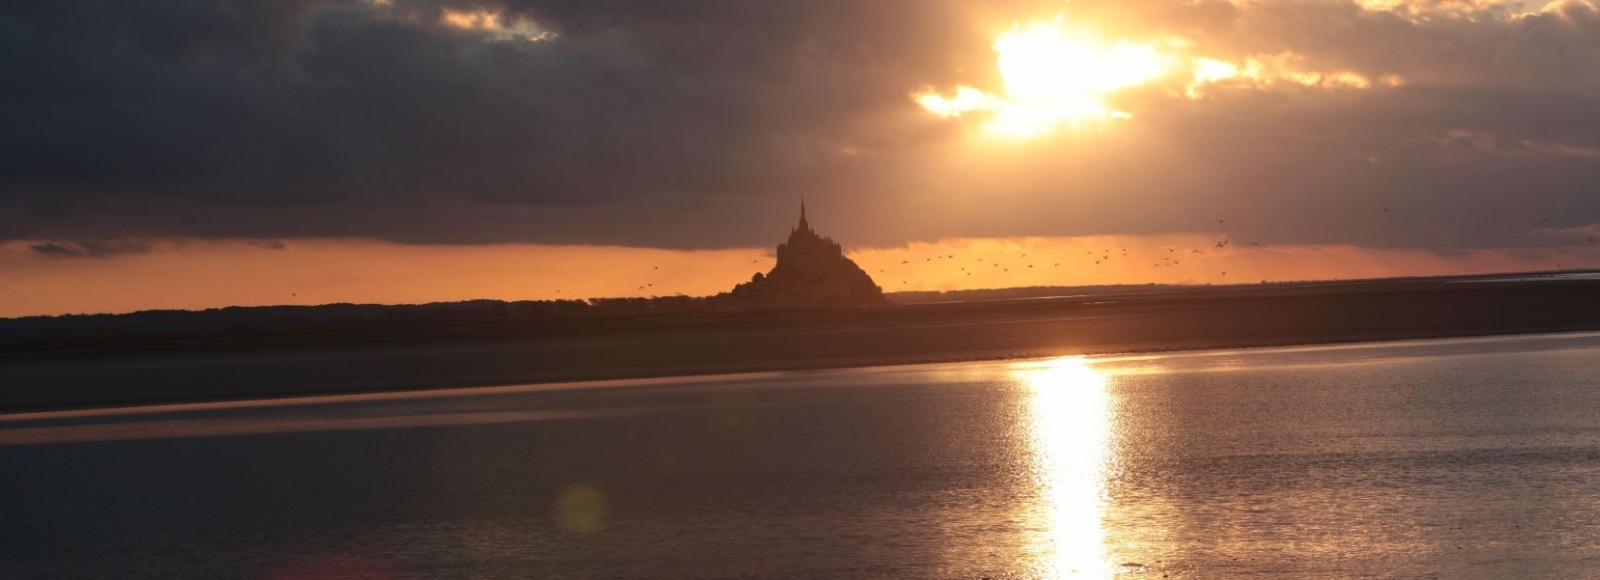 Normandy trips